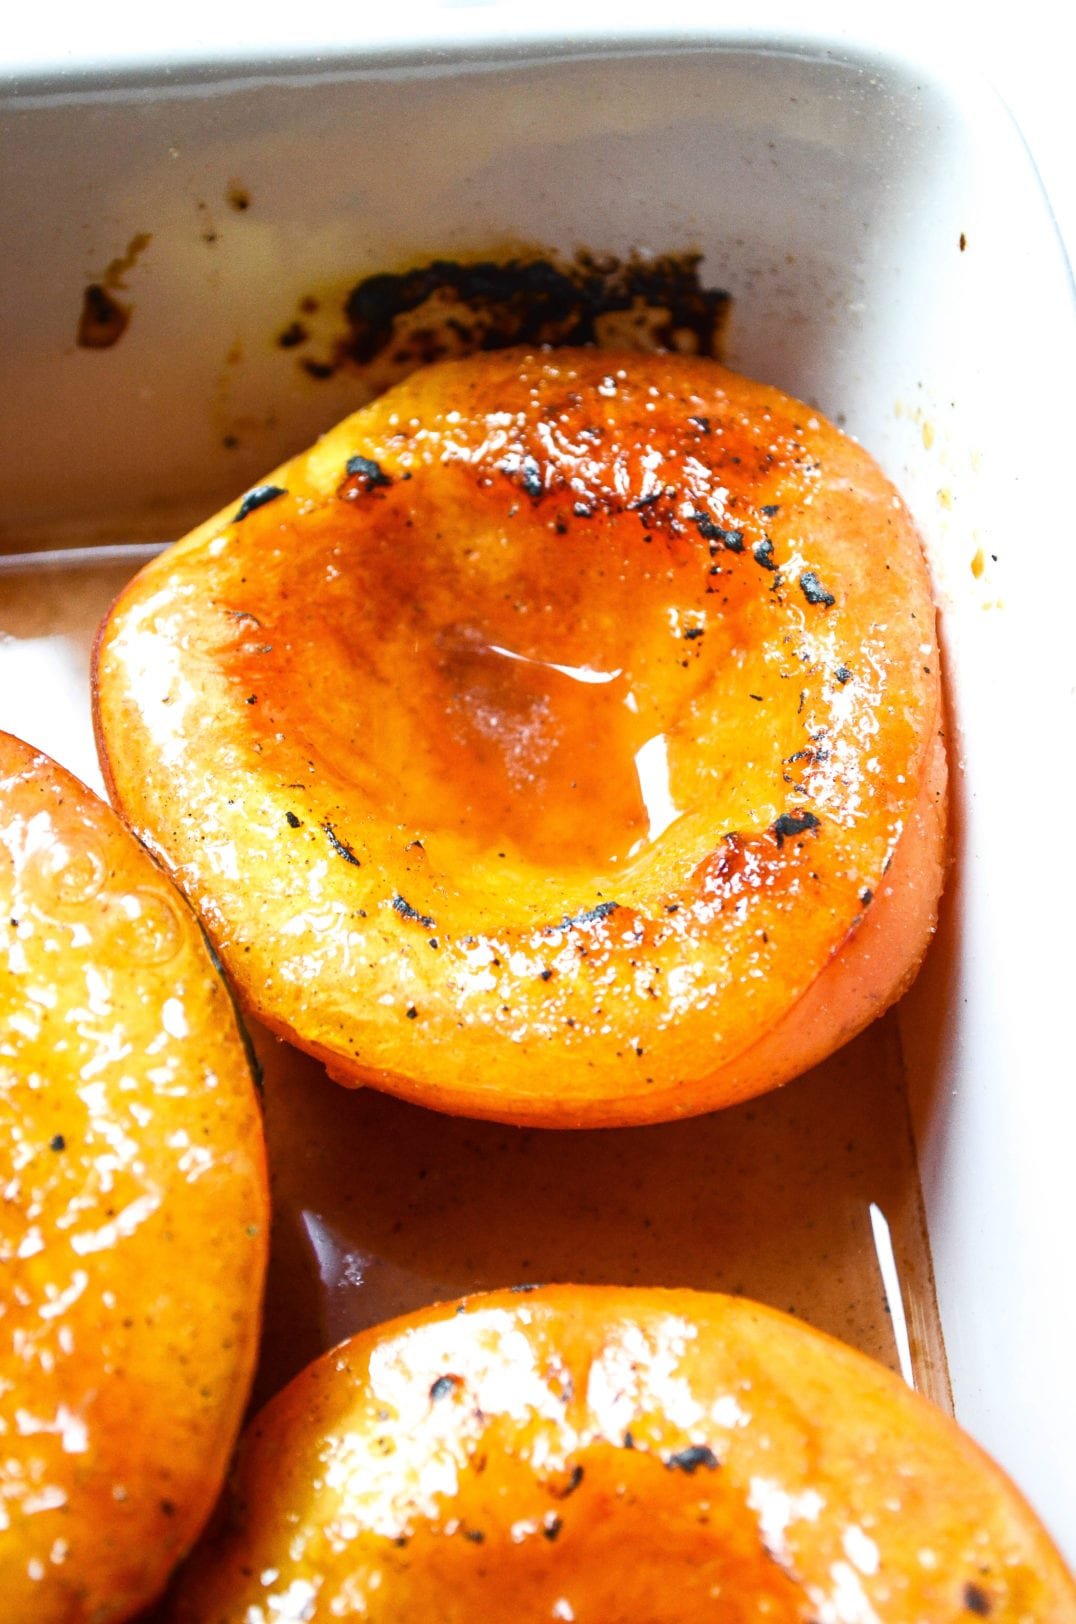 Baked Bourbon Soaked Nectarines With Brûléed Sugar